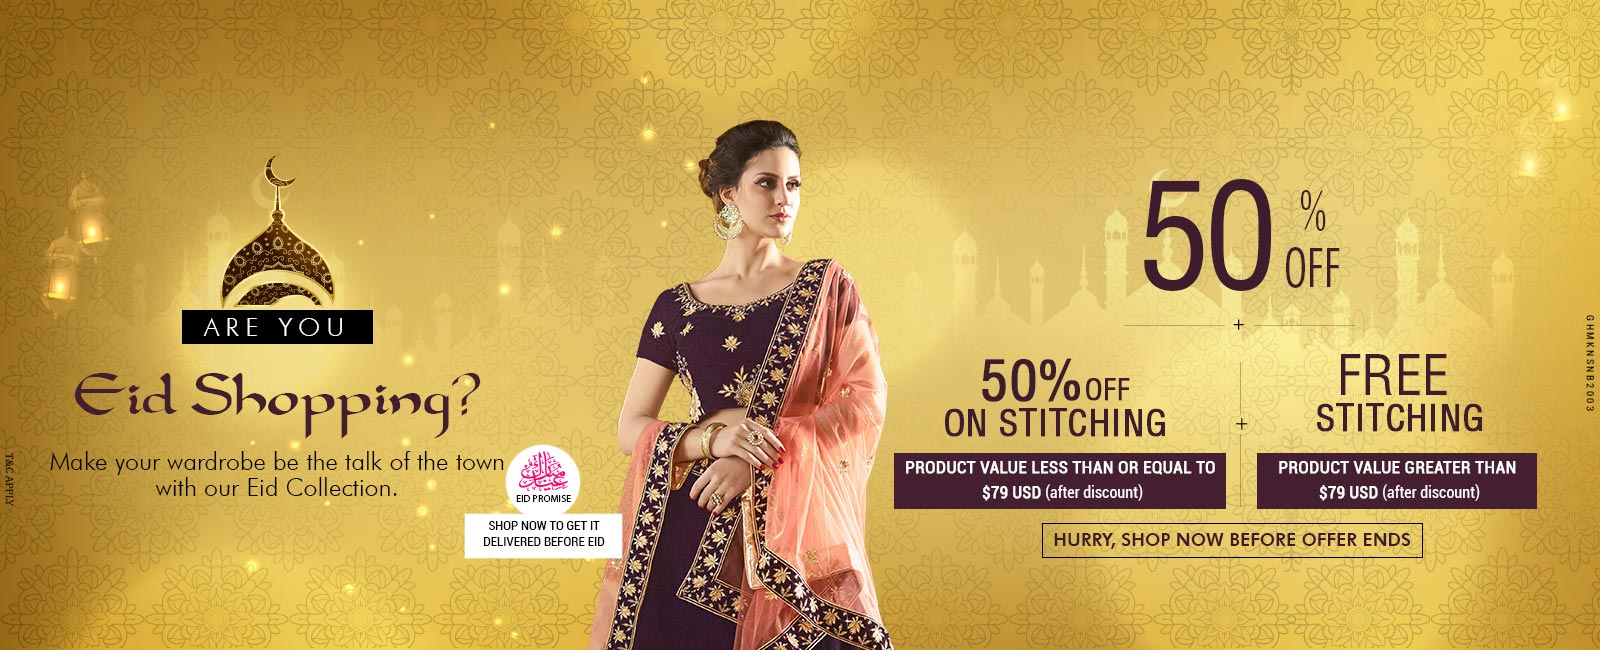 50% Off + 50% Off on Stitching + Free Stitching